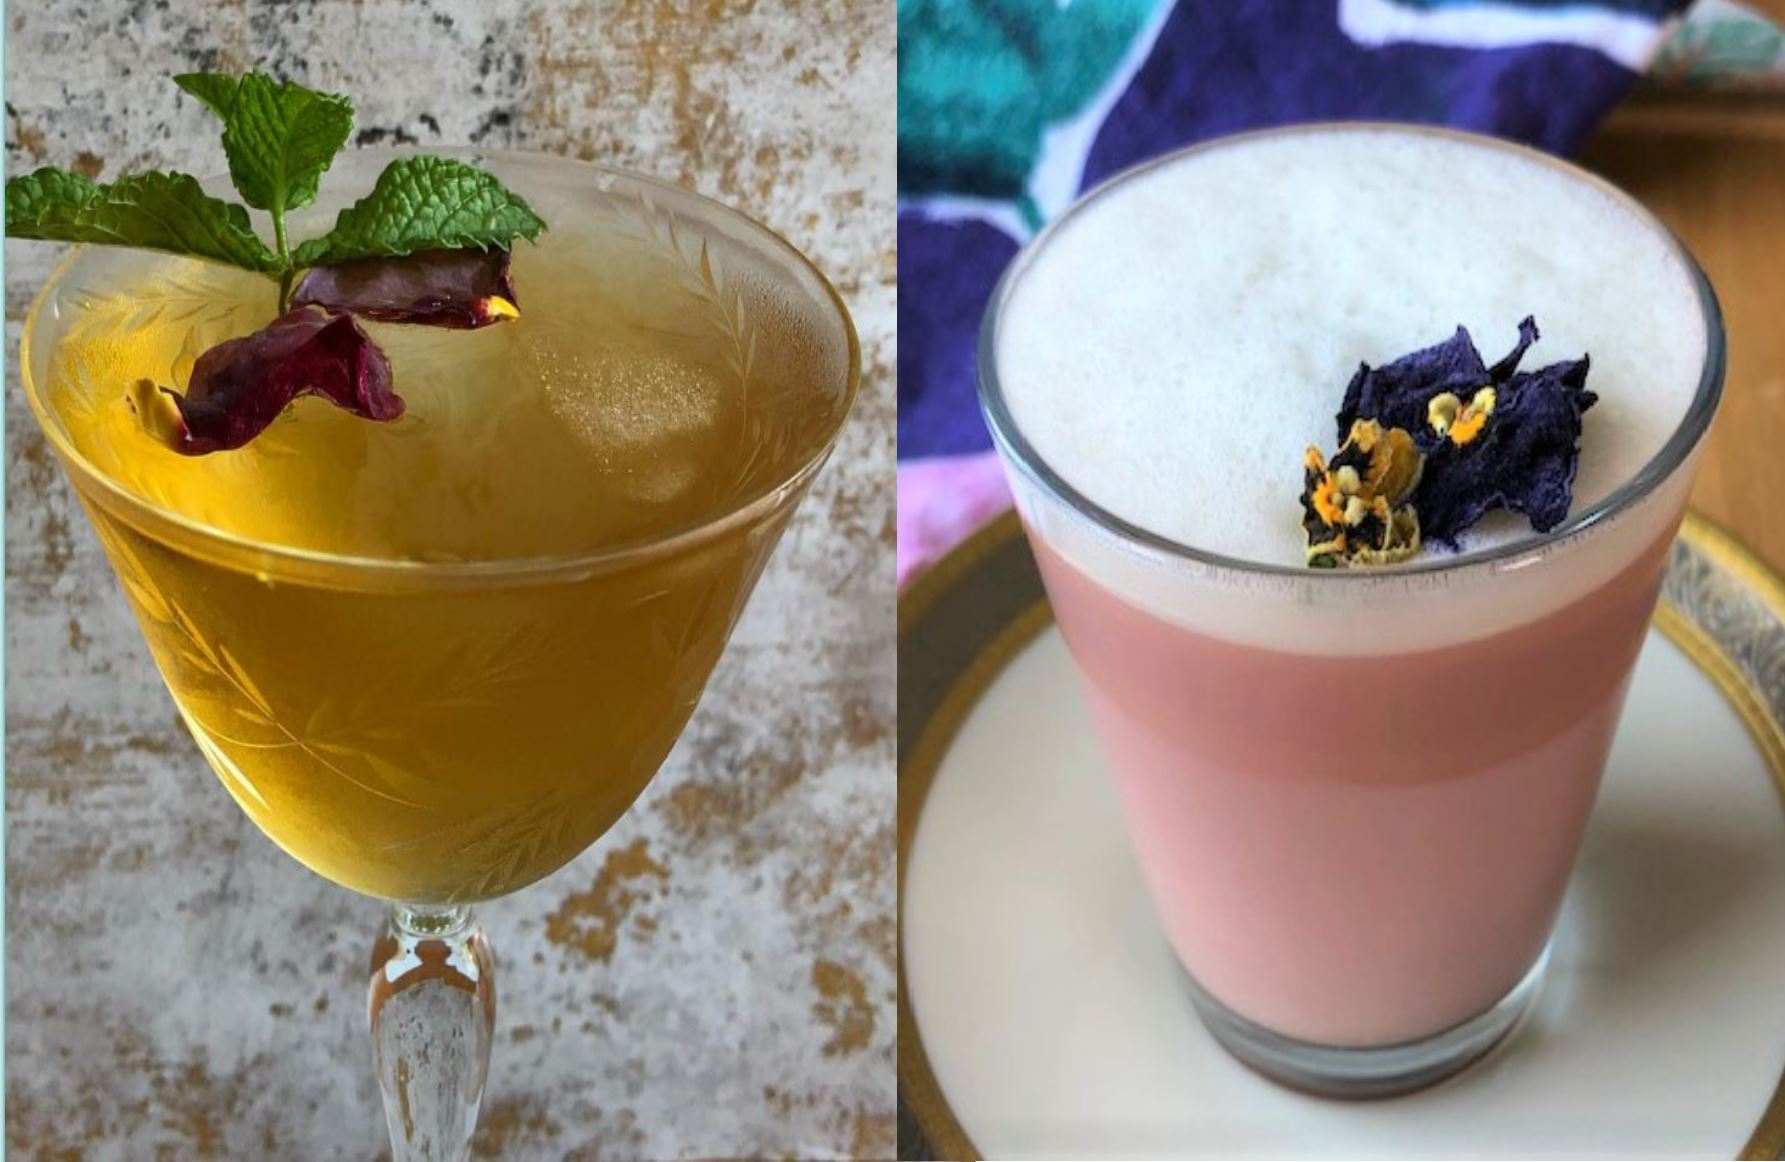 Iced tea in a cocktail glass, garnished with rose petals and mint and a pint latte garnished with edible pansy flowers